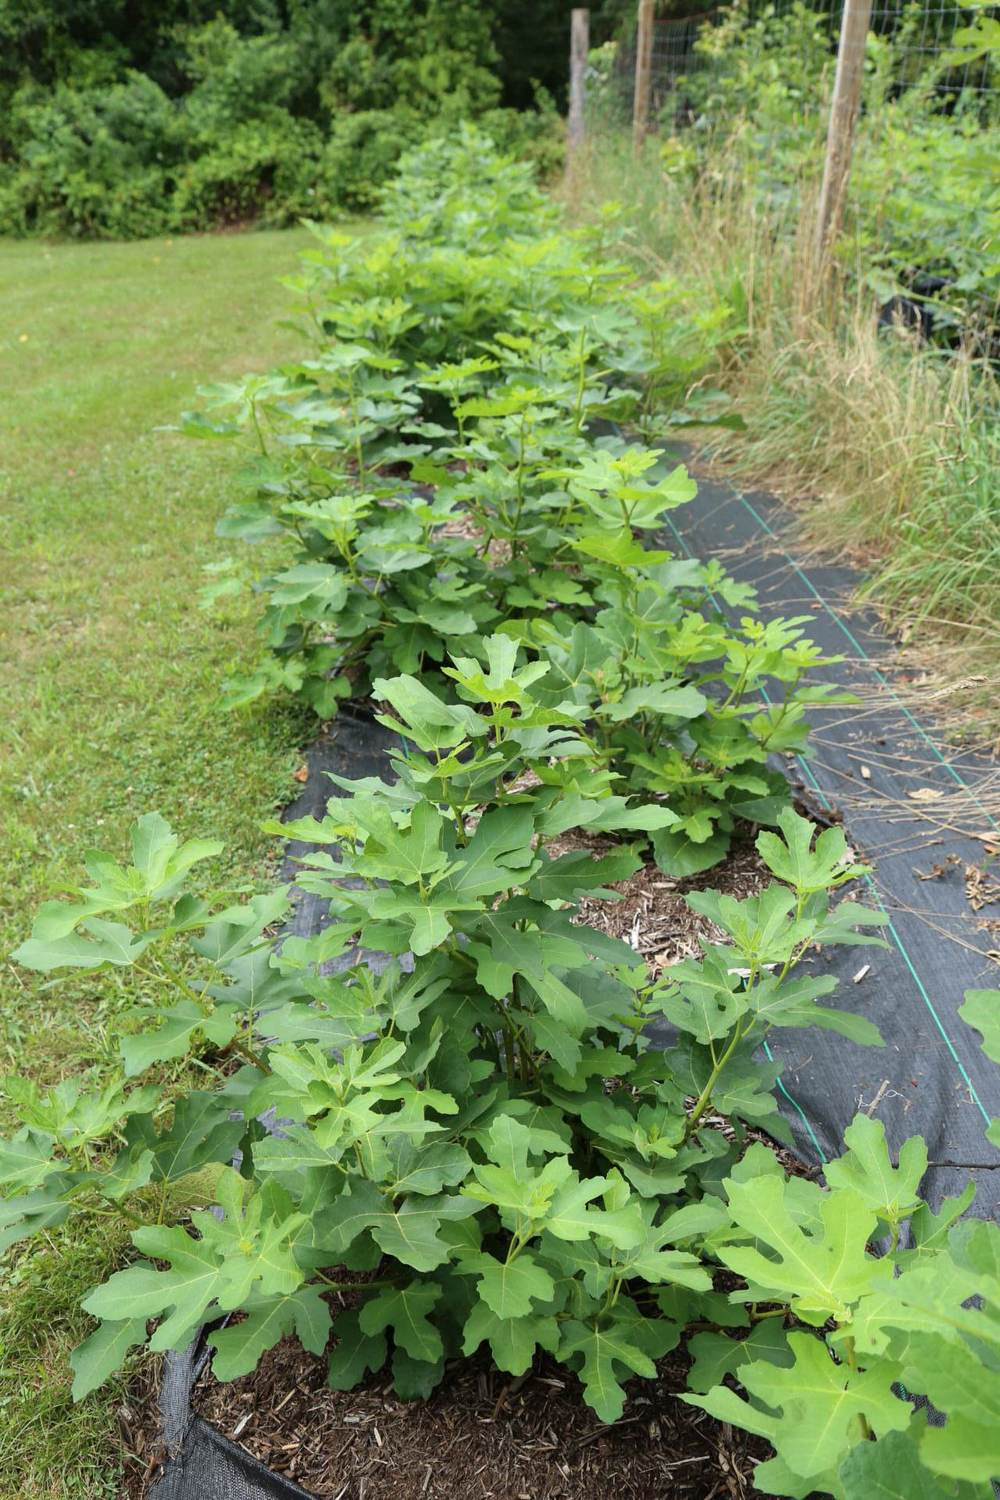 A happy, healthy row of figs on drip irrigation. Notice the growth even after a very harsh winter!